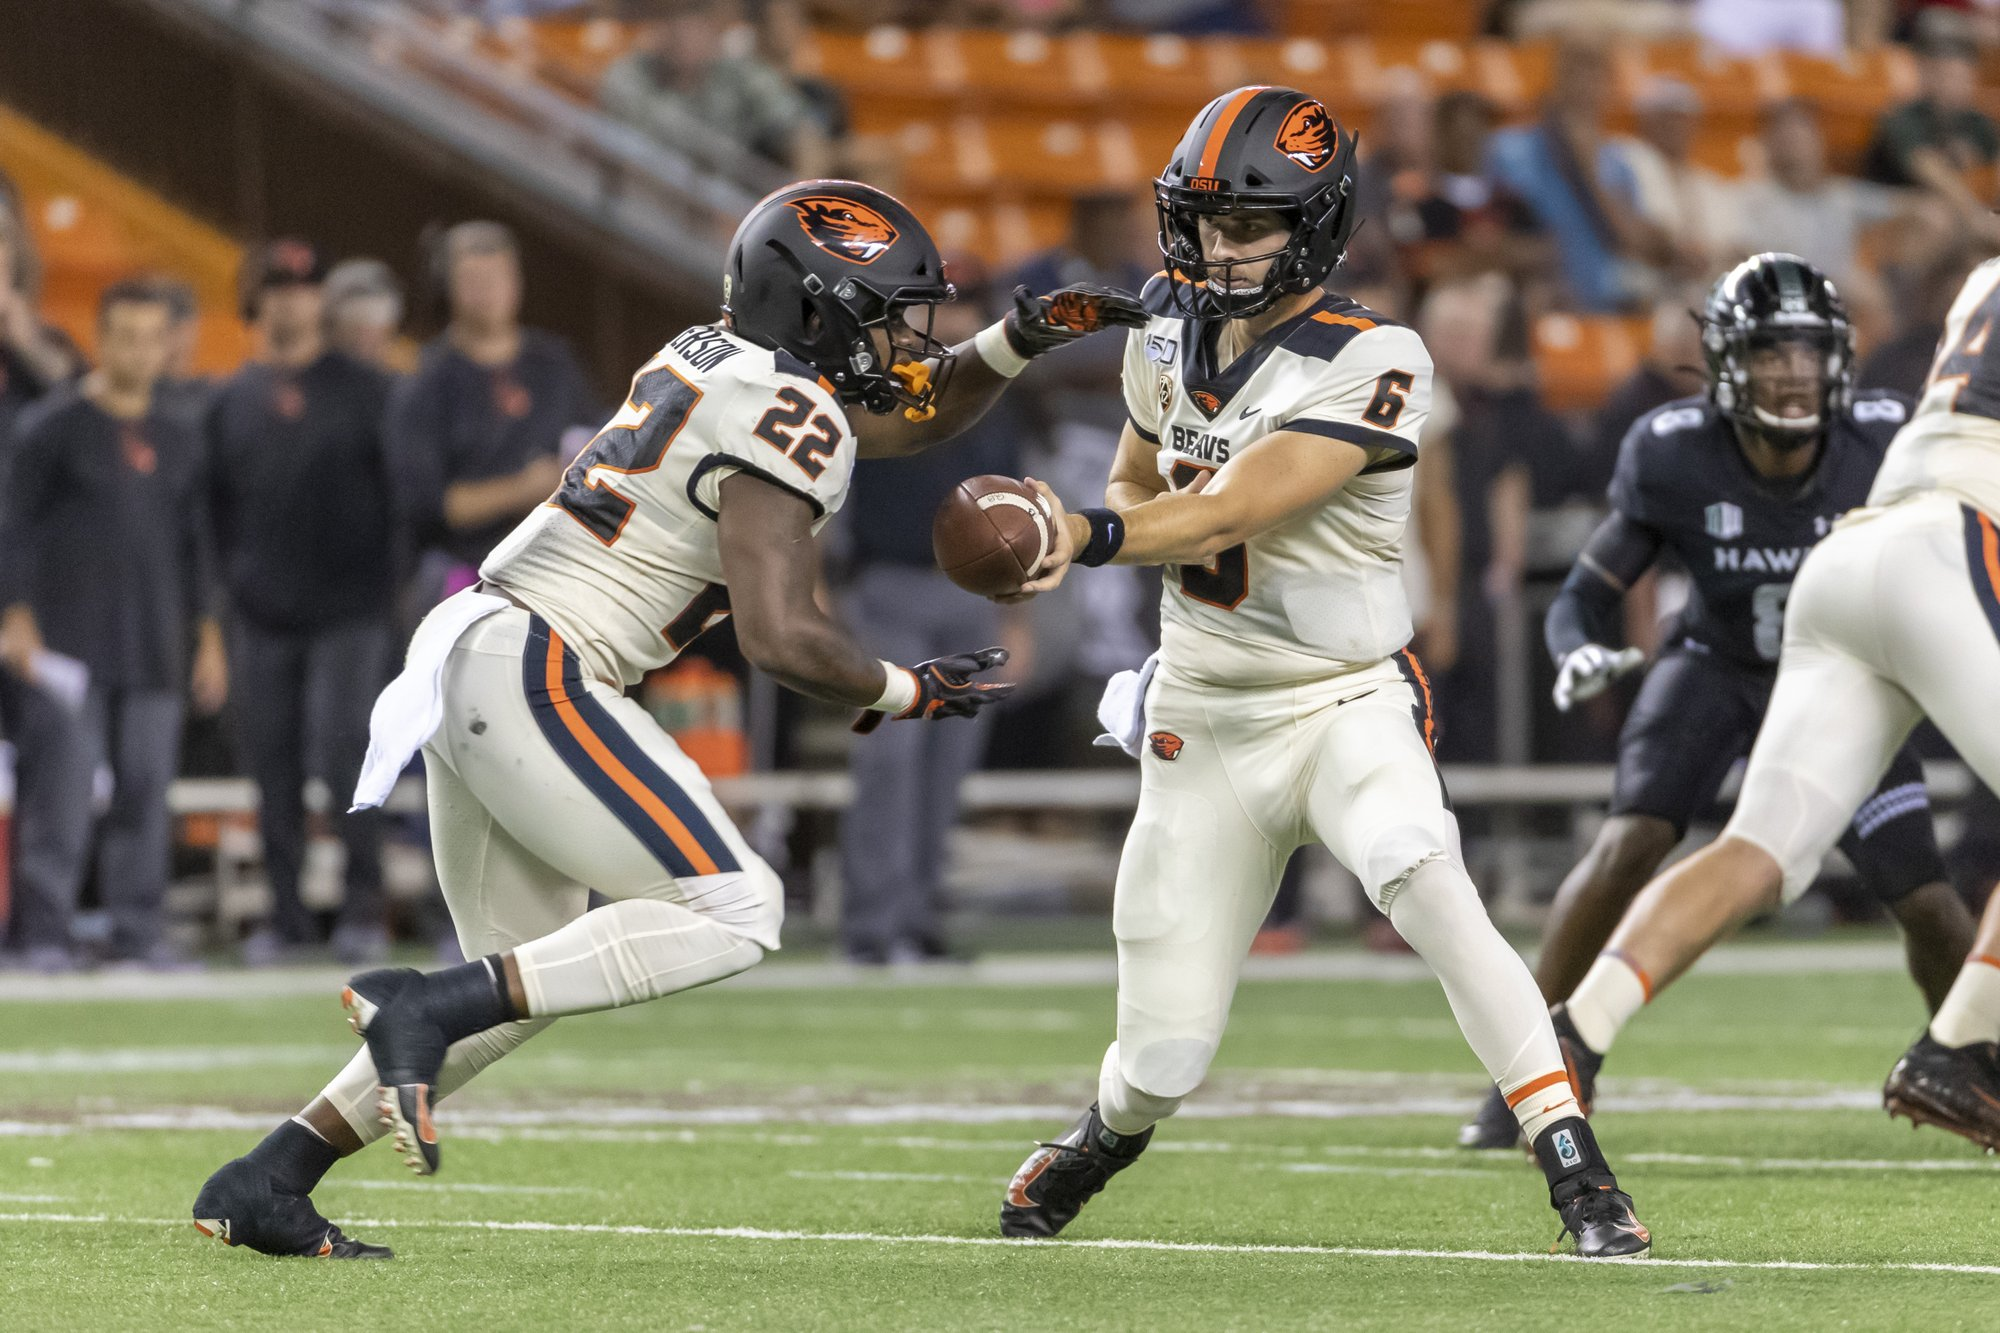 Oregon State looks to improve against Cal Poly